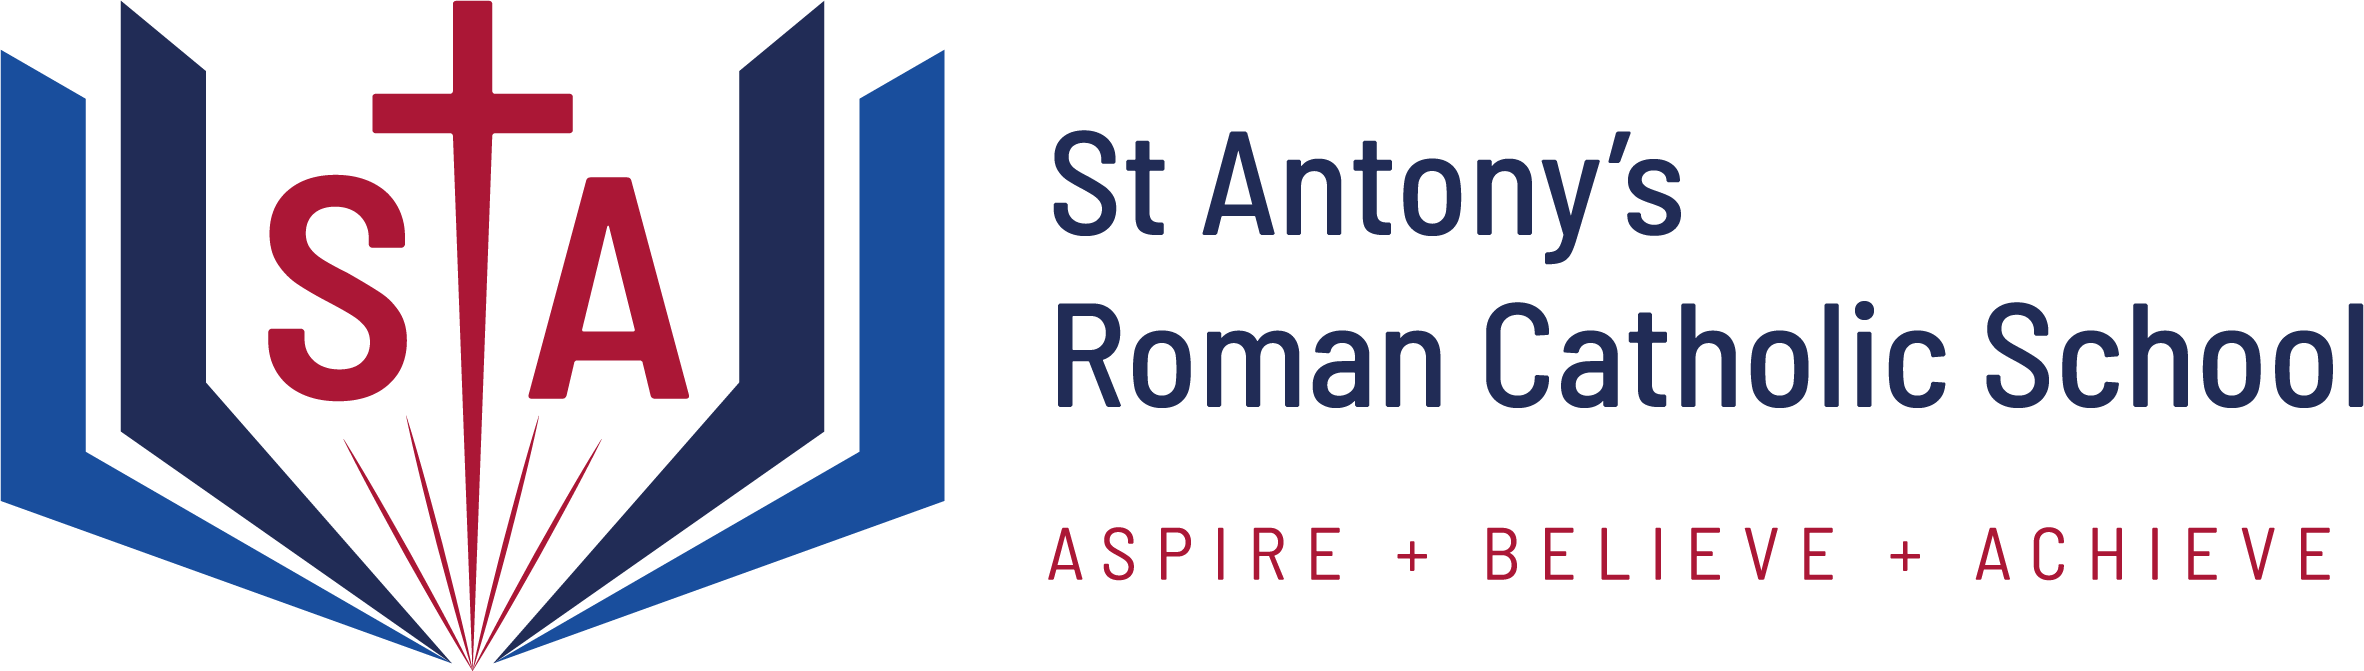 St. Antony's Roman Catholic School